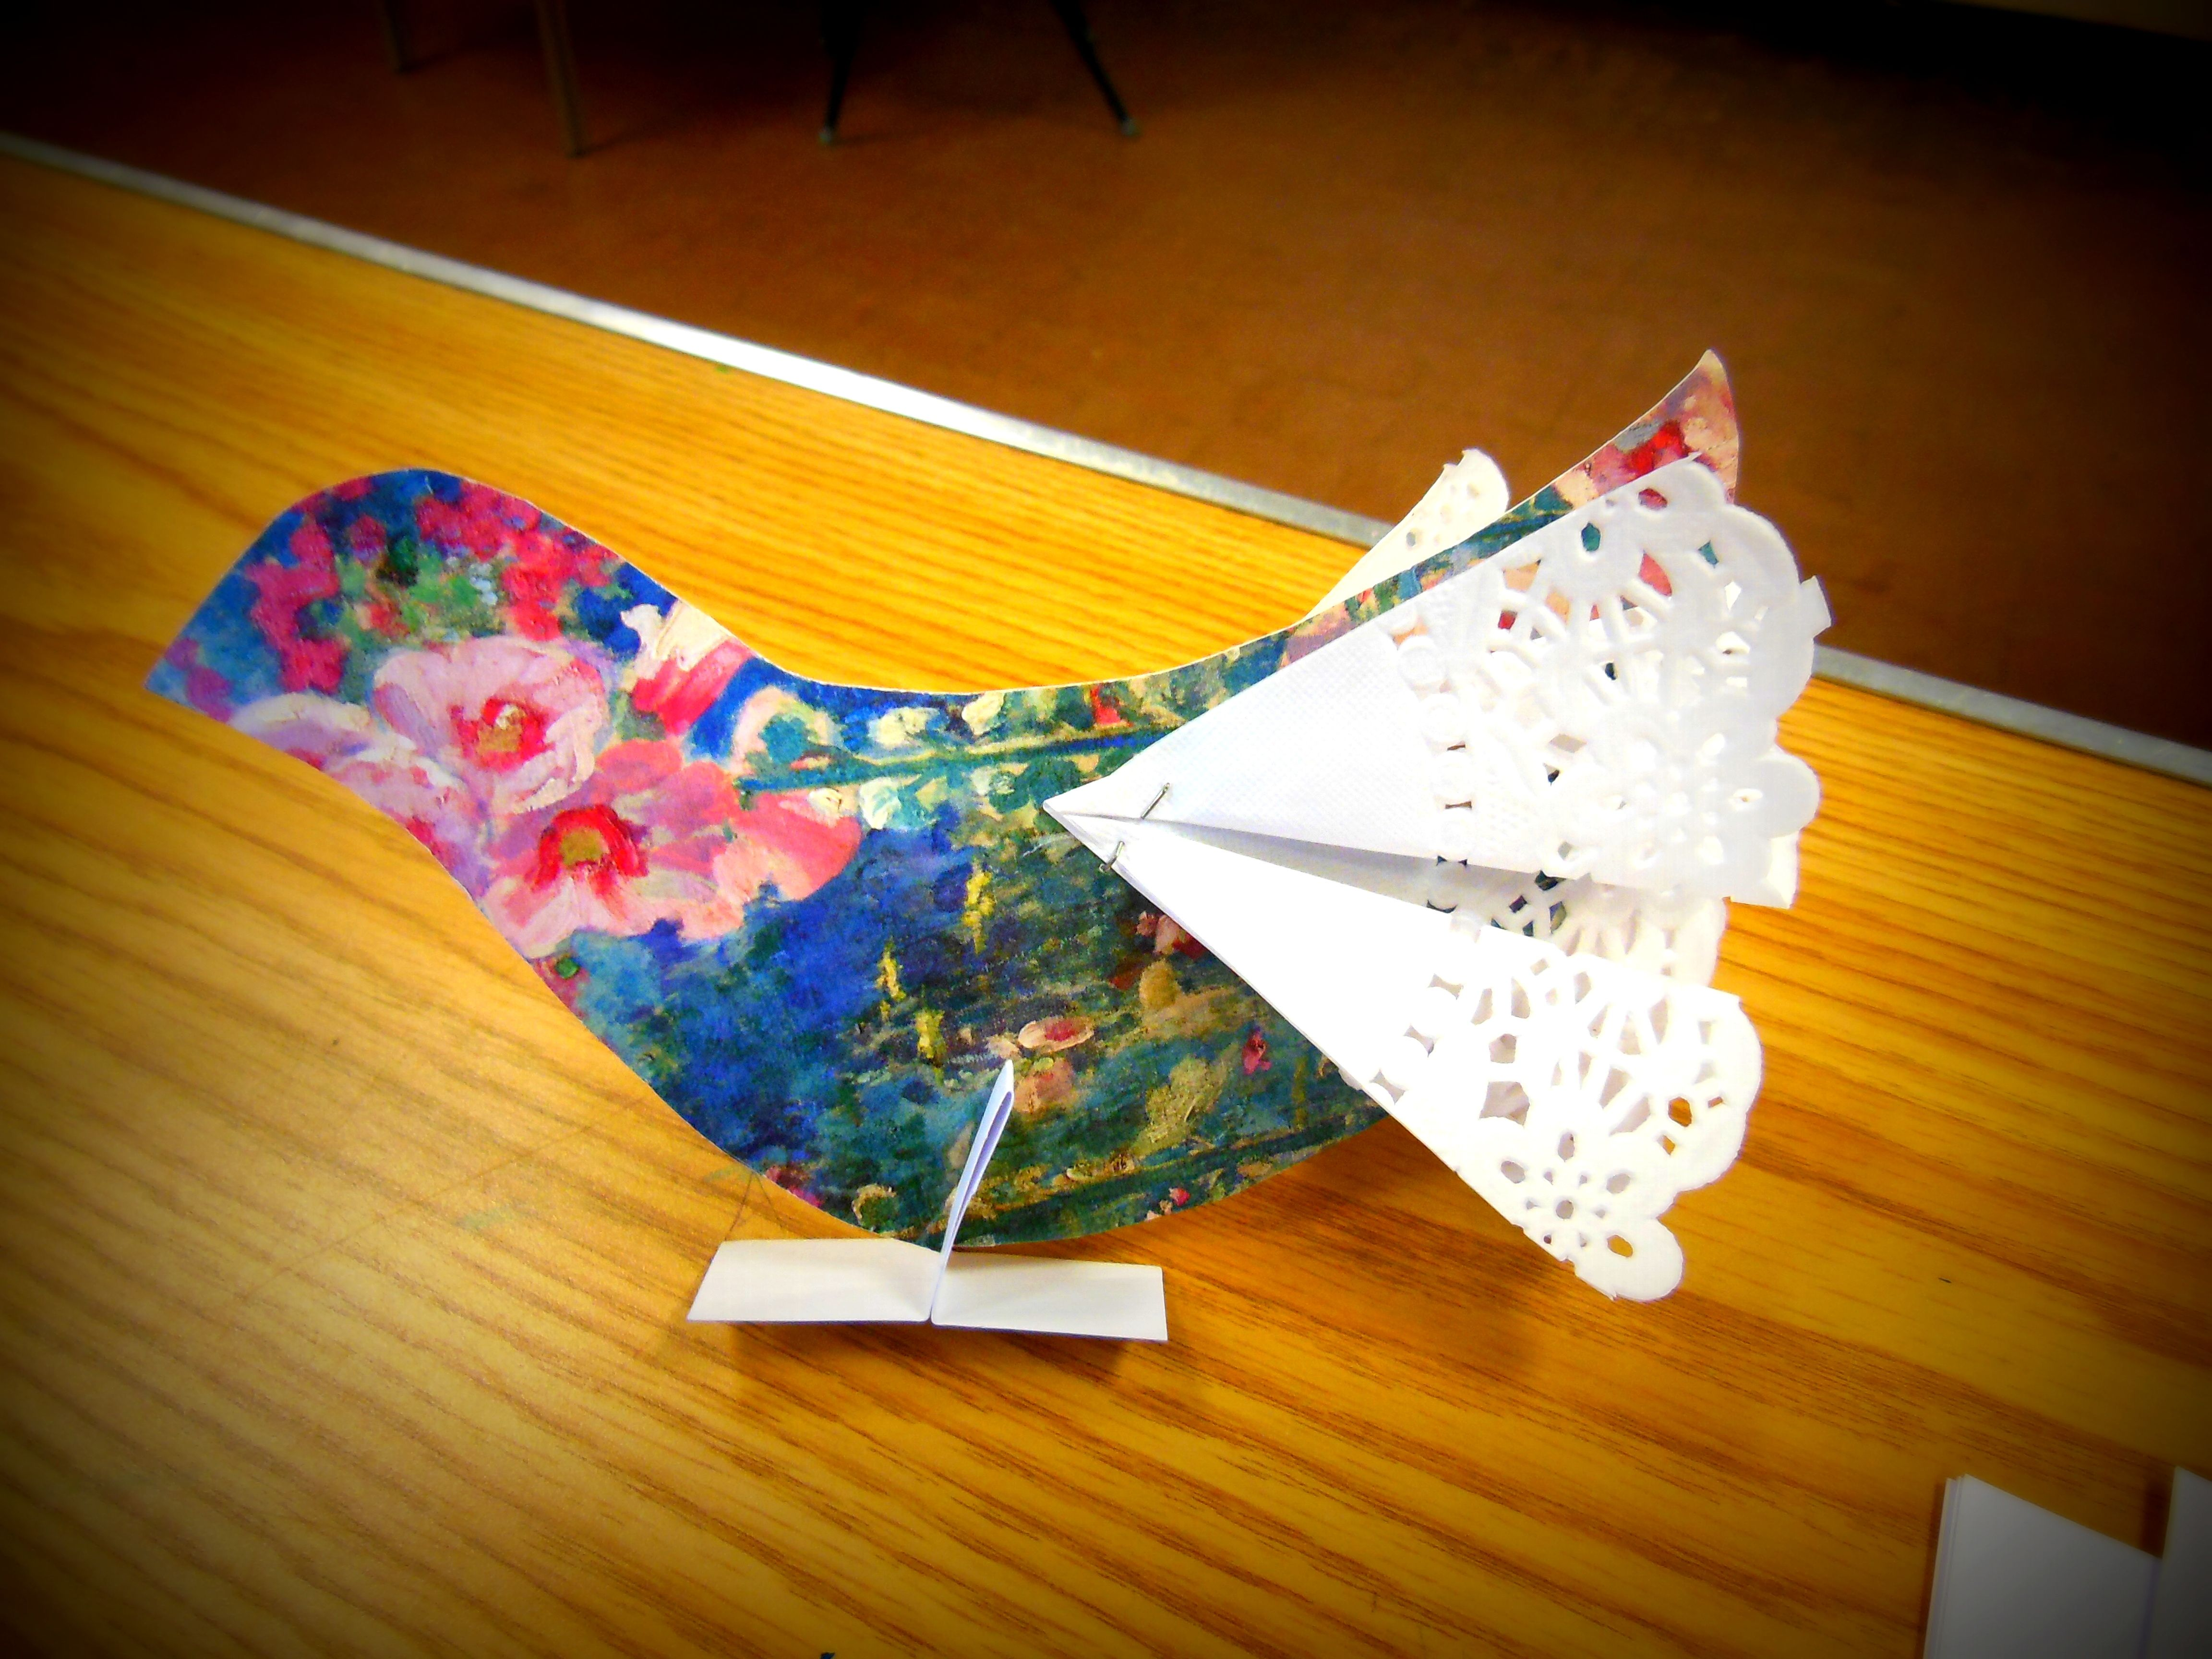 Make an easy colourful bird with old greetings cards and doily make an easy colourful bird with old greetings cards and doily sections kristyandbryce Images